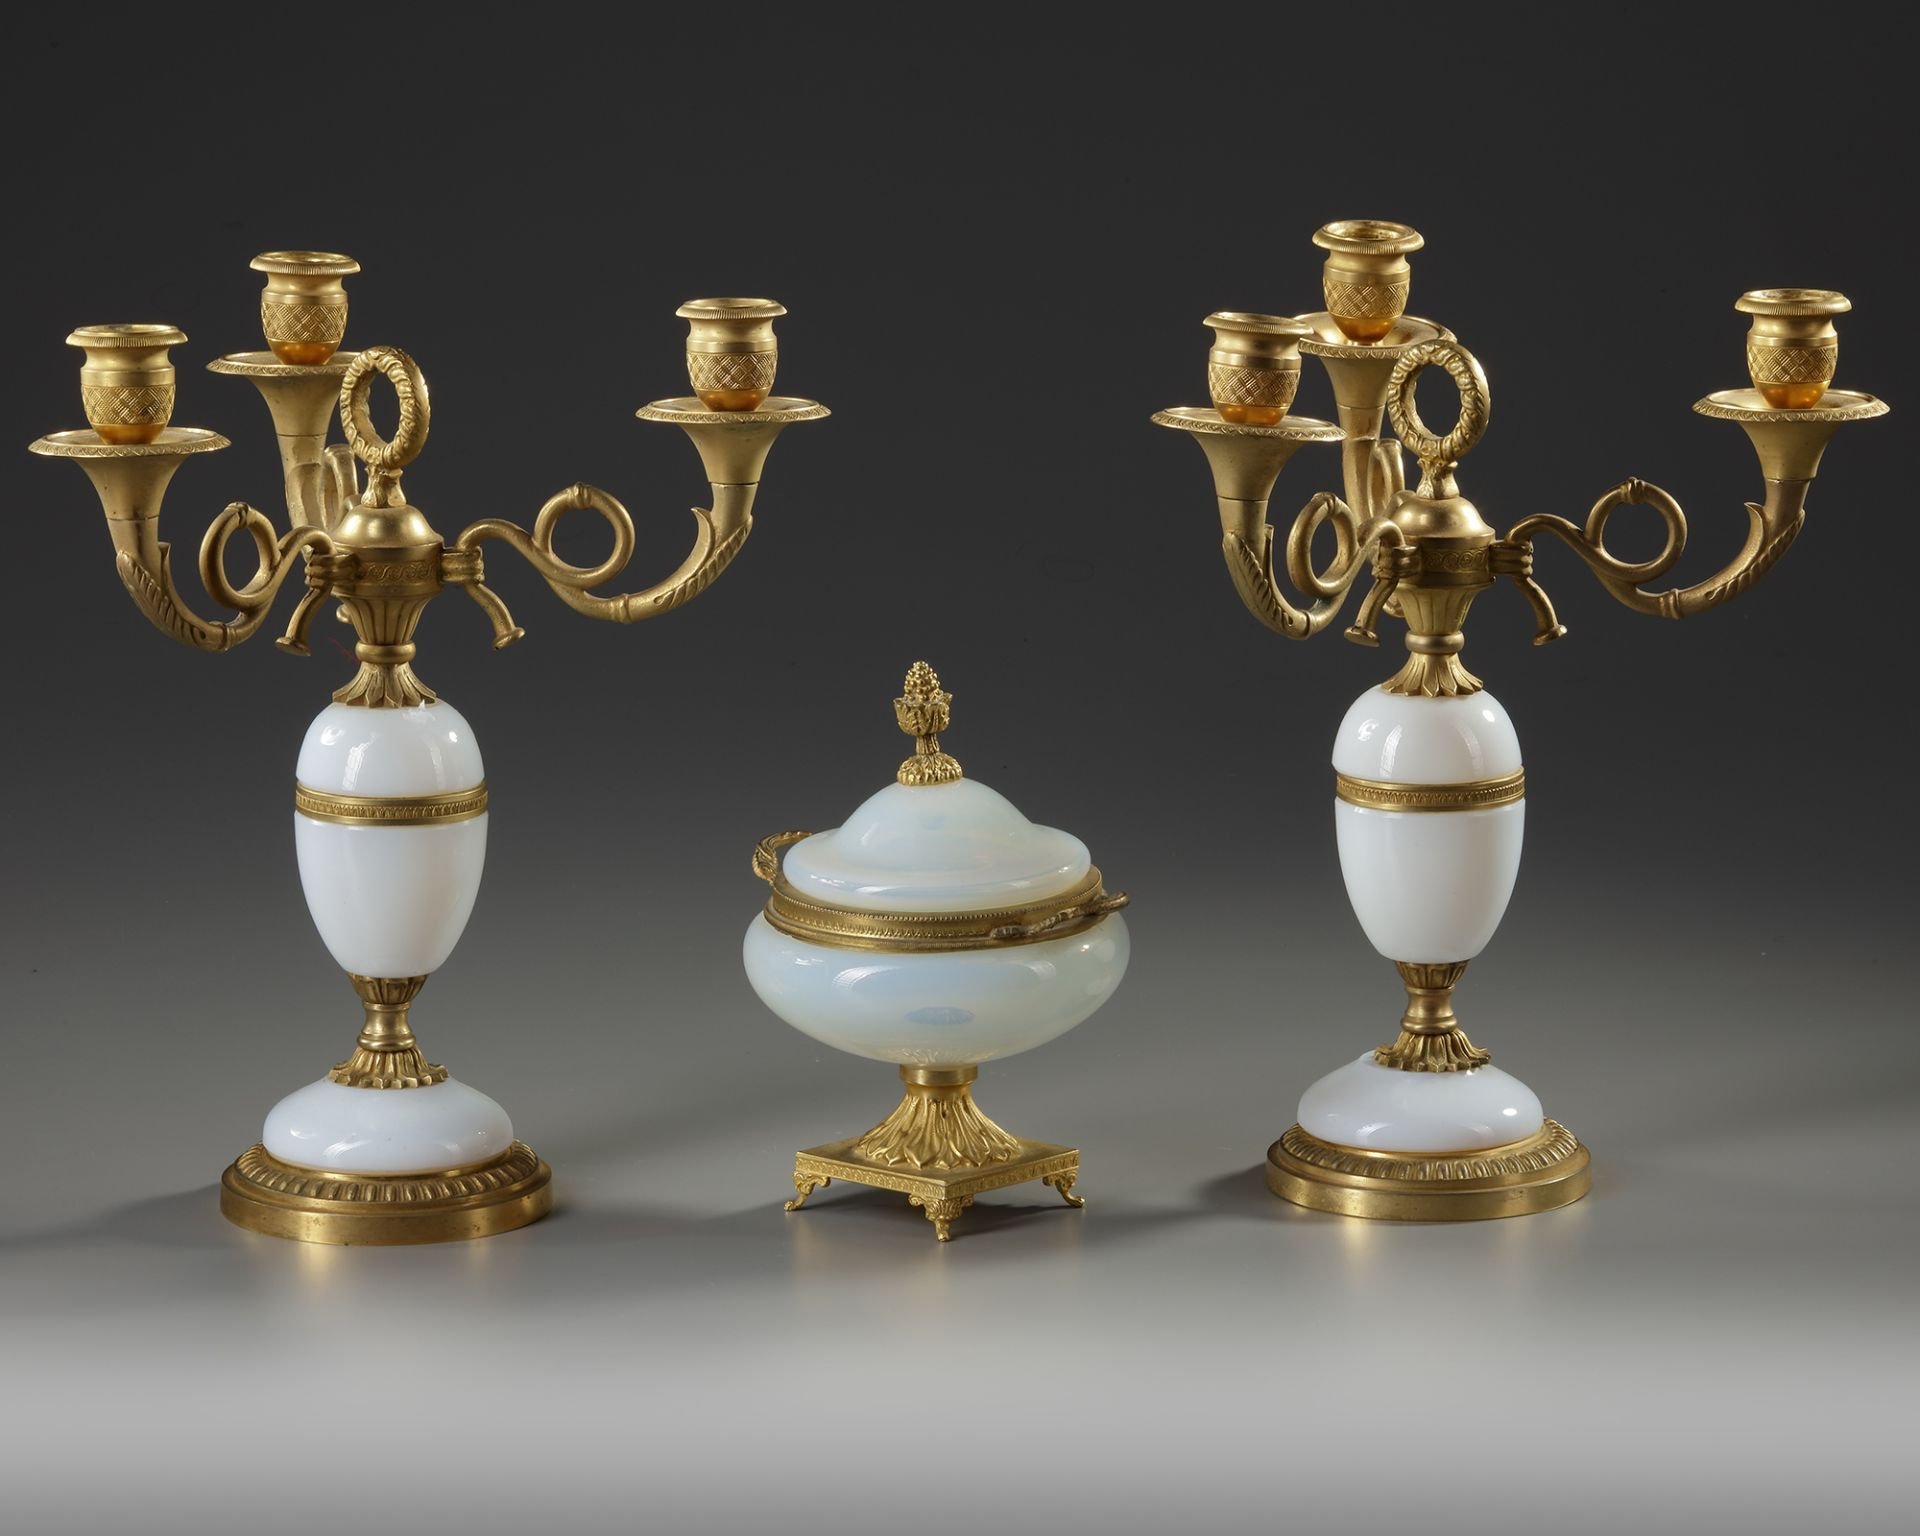 A WHITE OPALINE AND ORMOLU SET, CHARLES X, 19TH CENTURY - Image 2 of 3